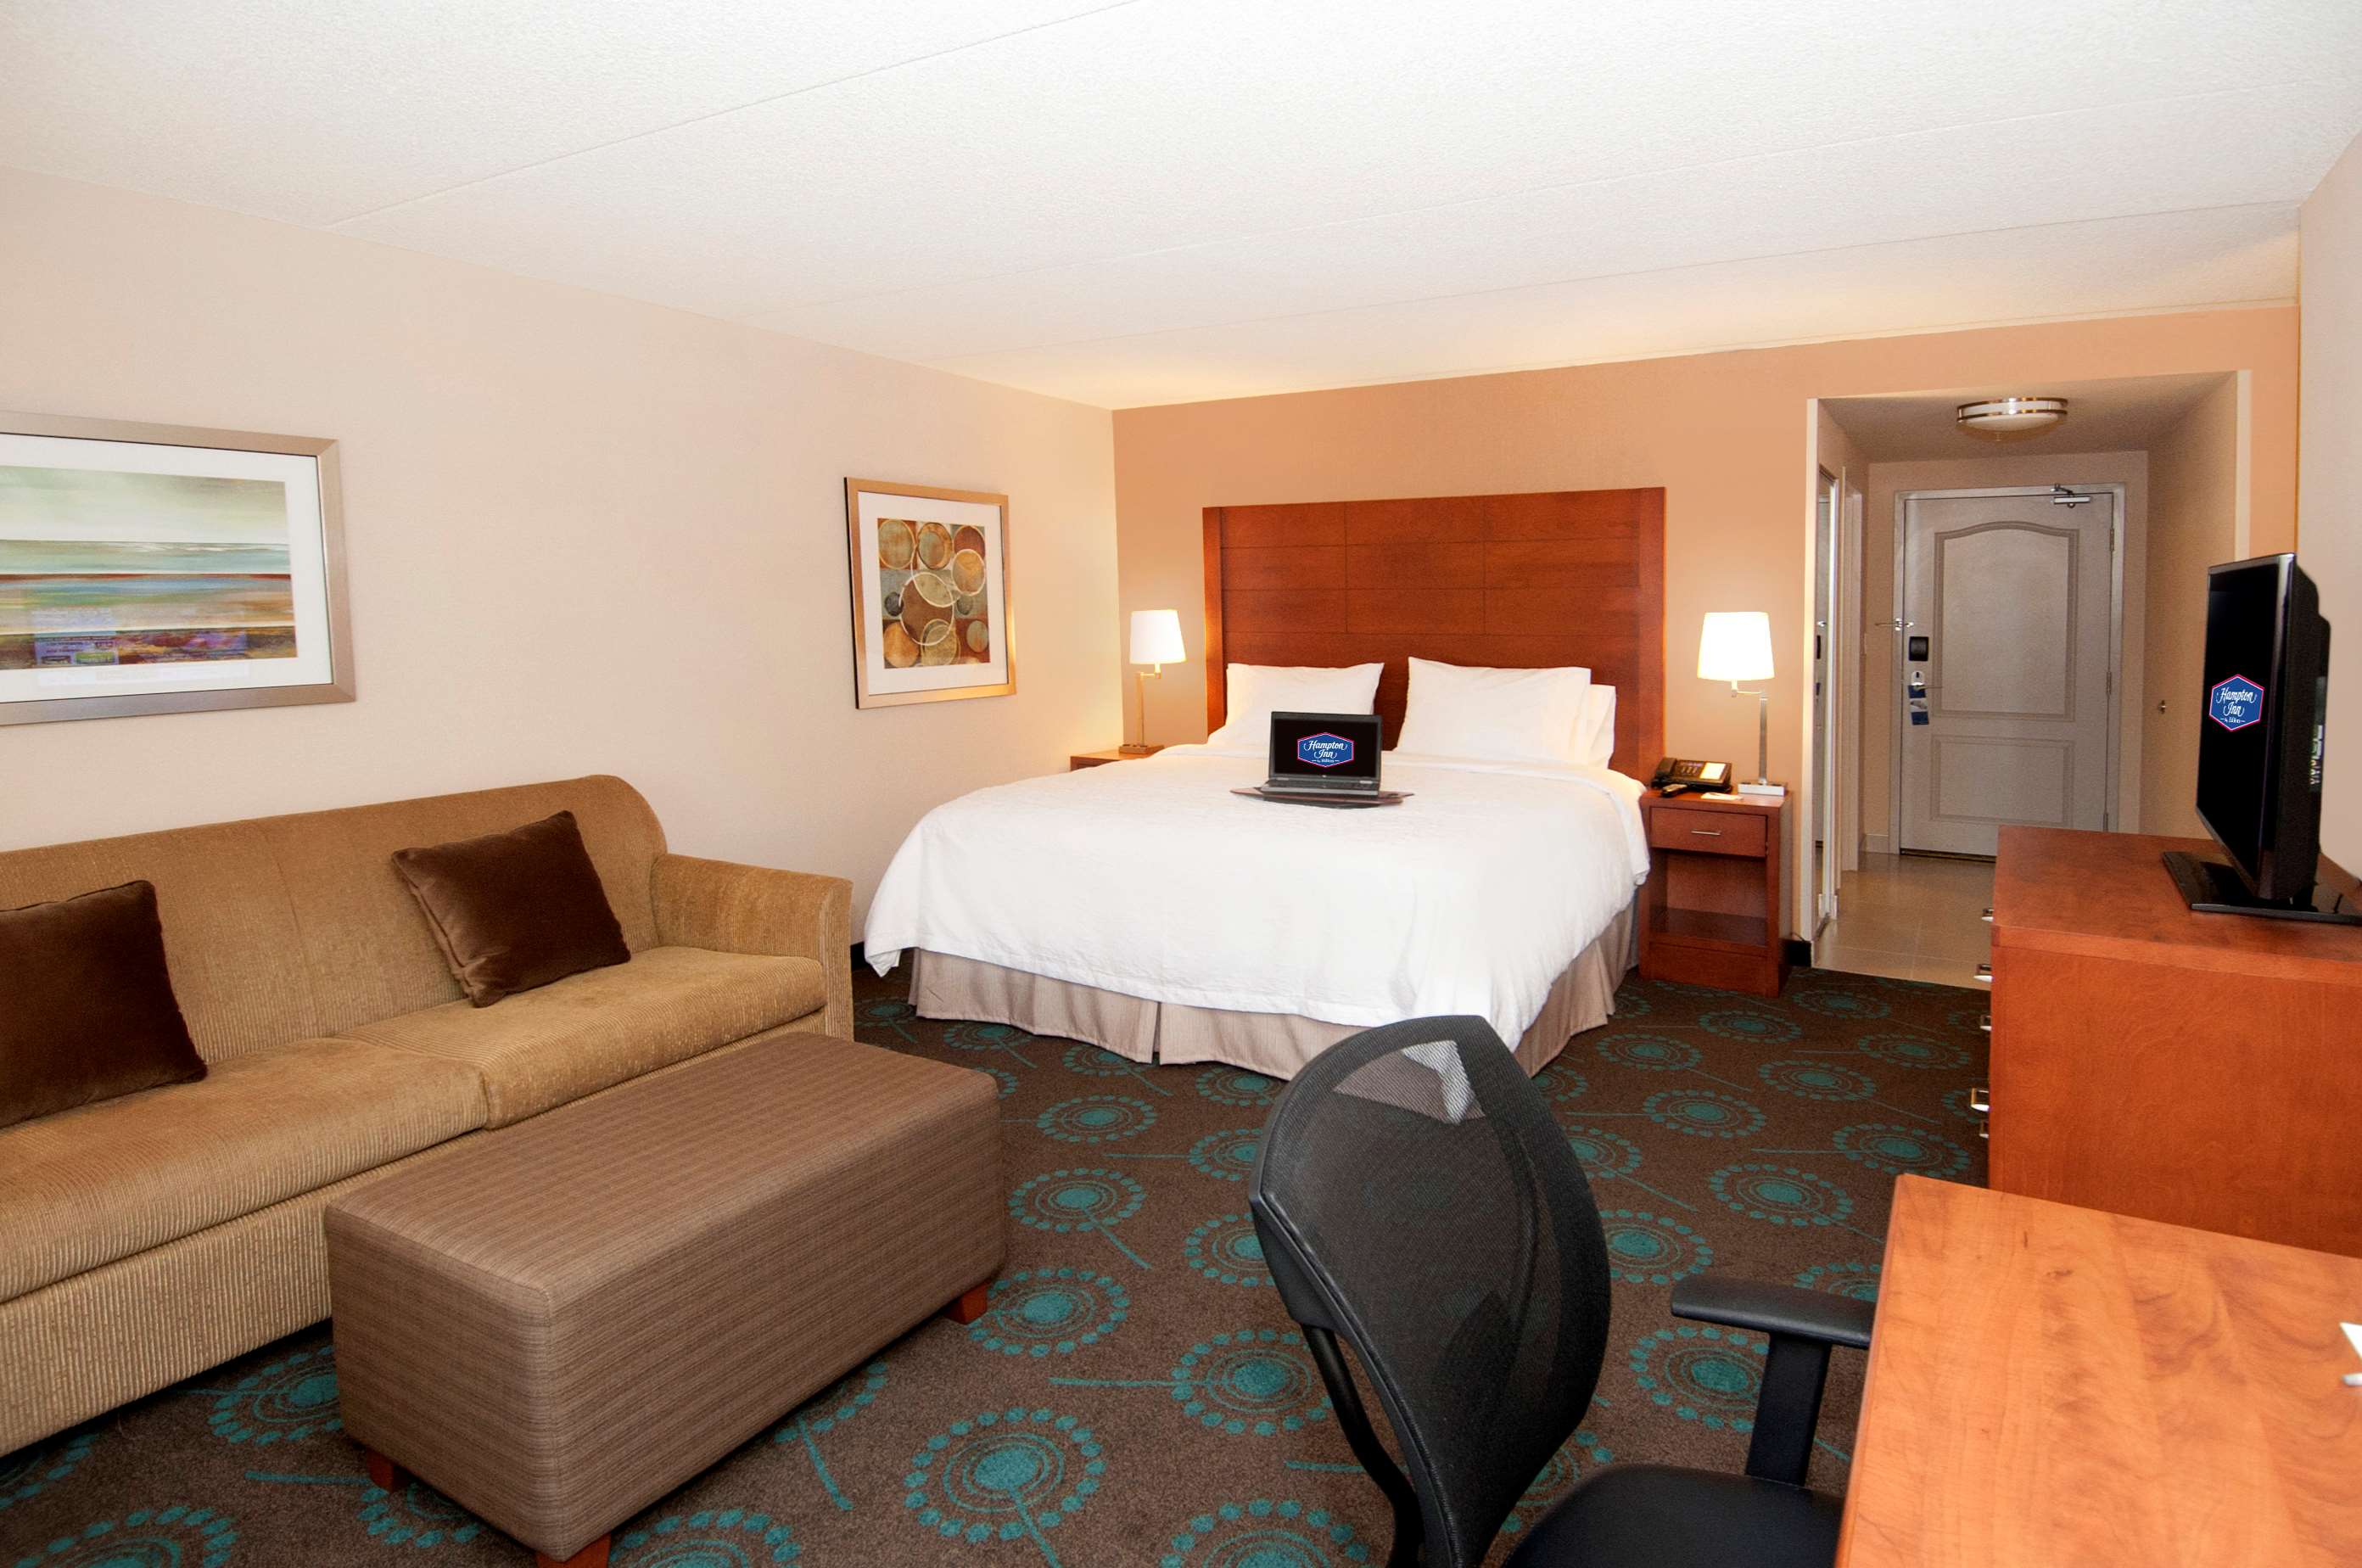 Hampton Inn by Hilton Brampton Toronto in Brampton: Guest room